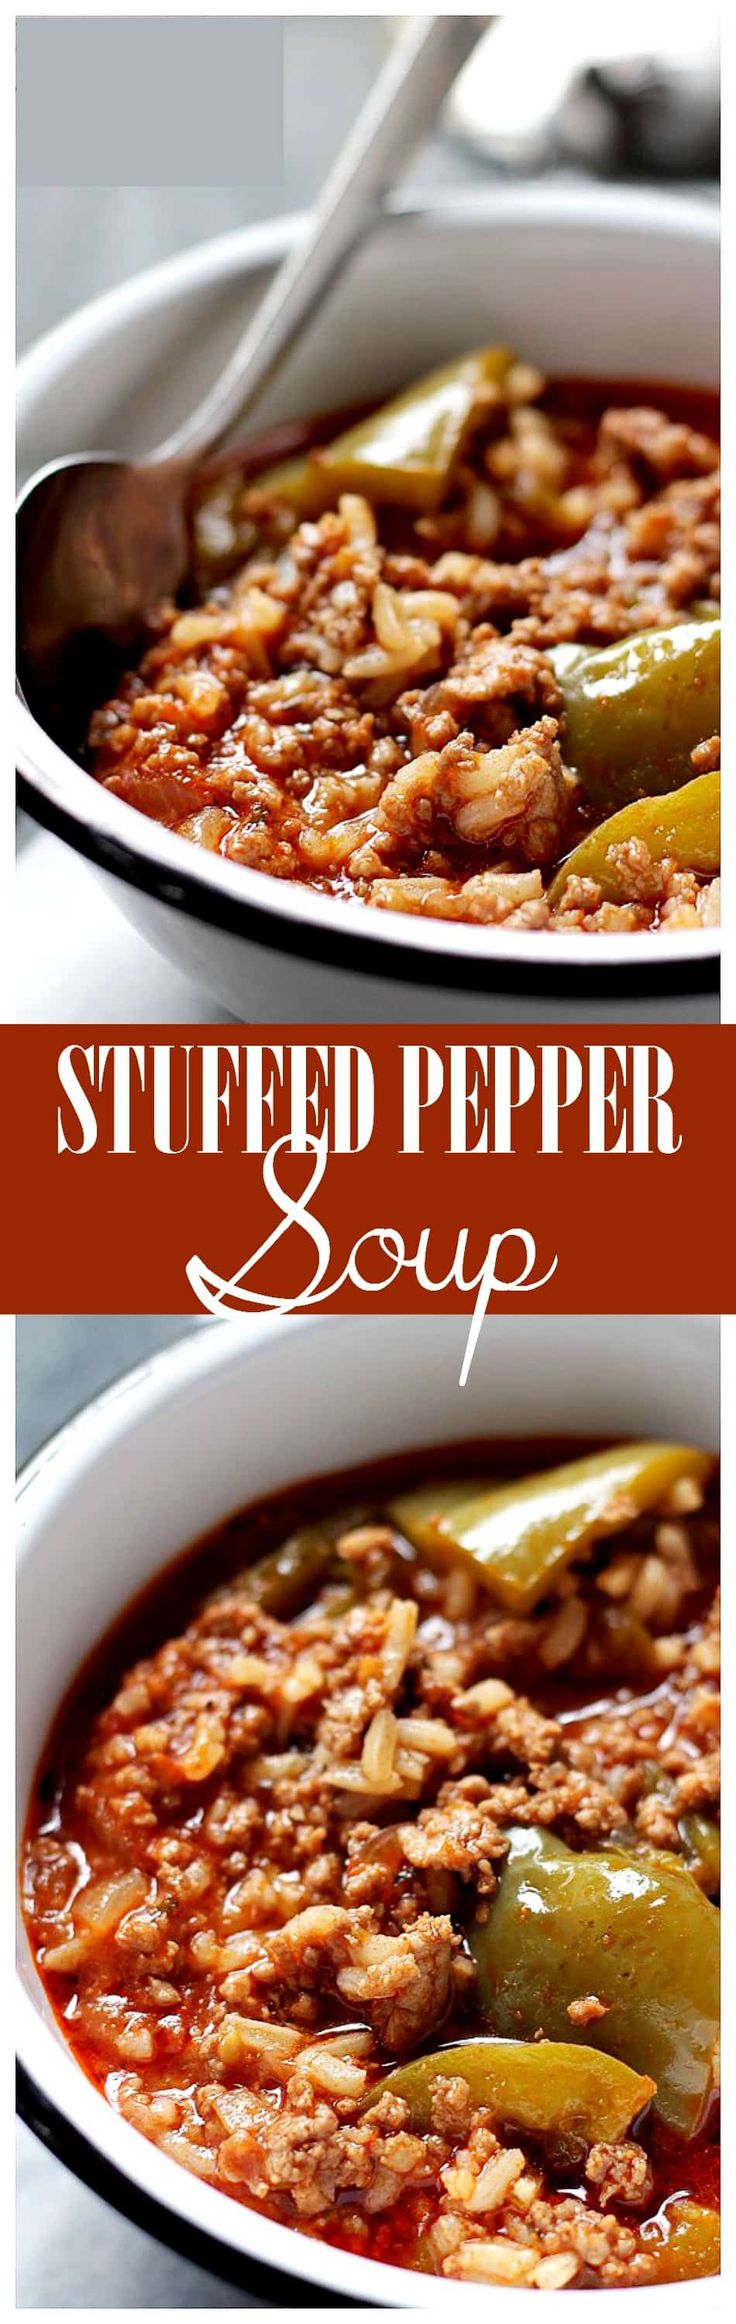 Stuffed Pepper Soup - Hearty, comforting, warm and incredibly flavorful, Stuffed Pepper Soup.